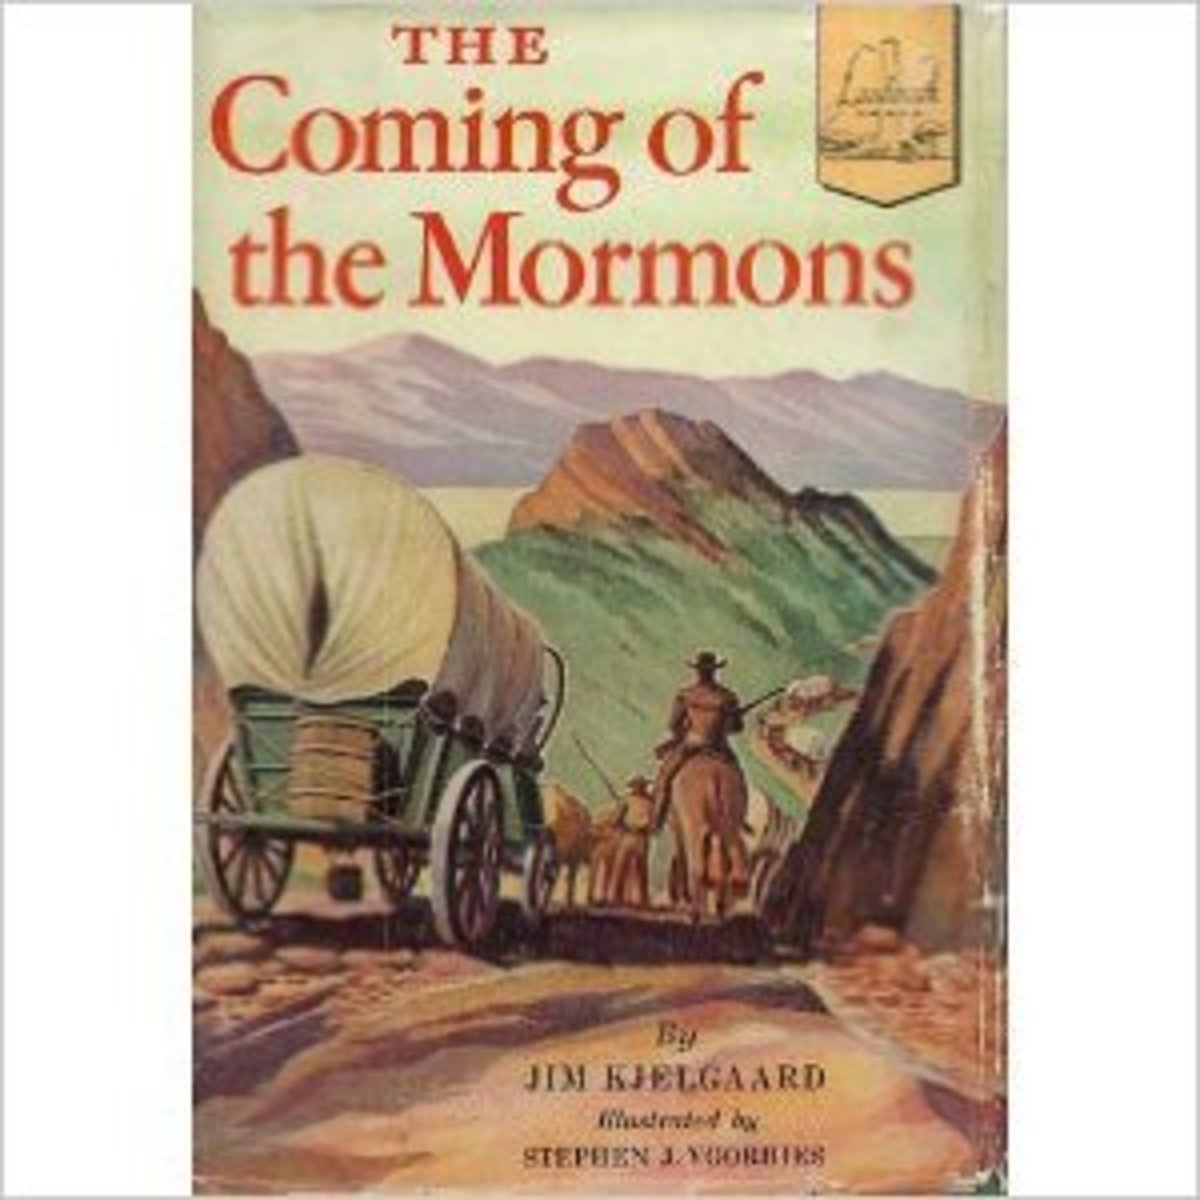 The Coming of the Mormons by Jim Kjelgaard